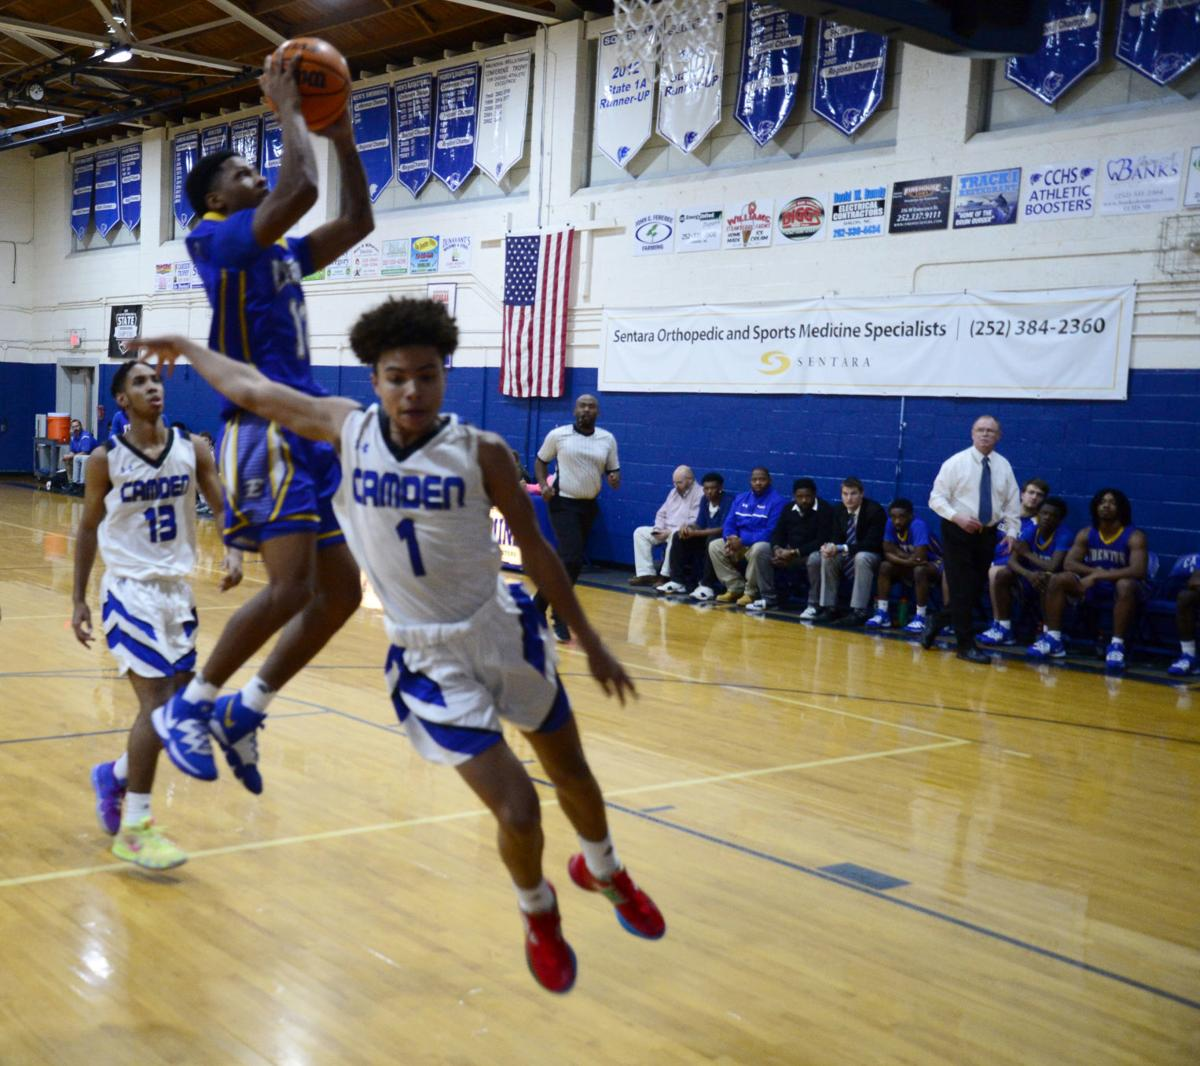 Edenton vs. Camden boys' basketball